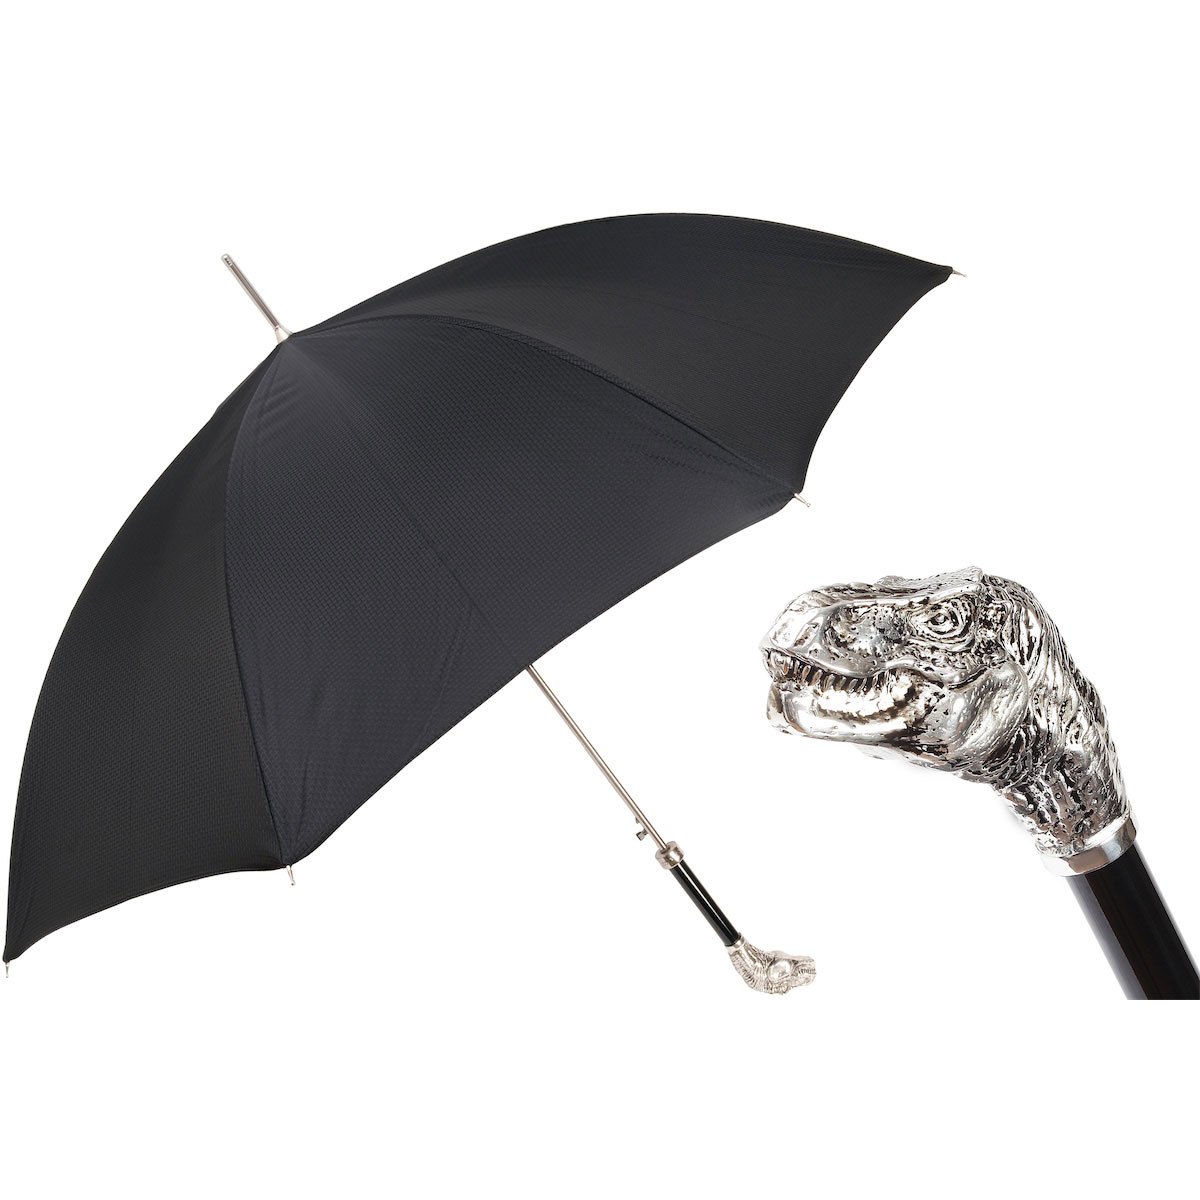 Pasotti Ombrelli Black Men's Umbrella - T-Rex